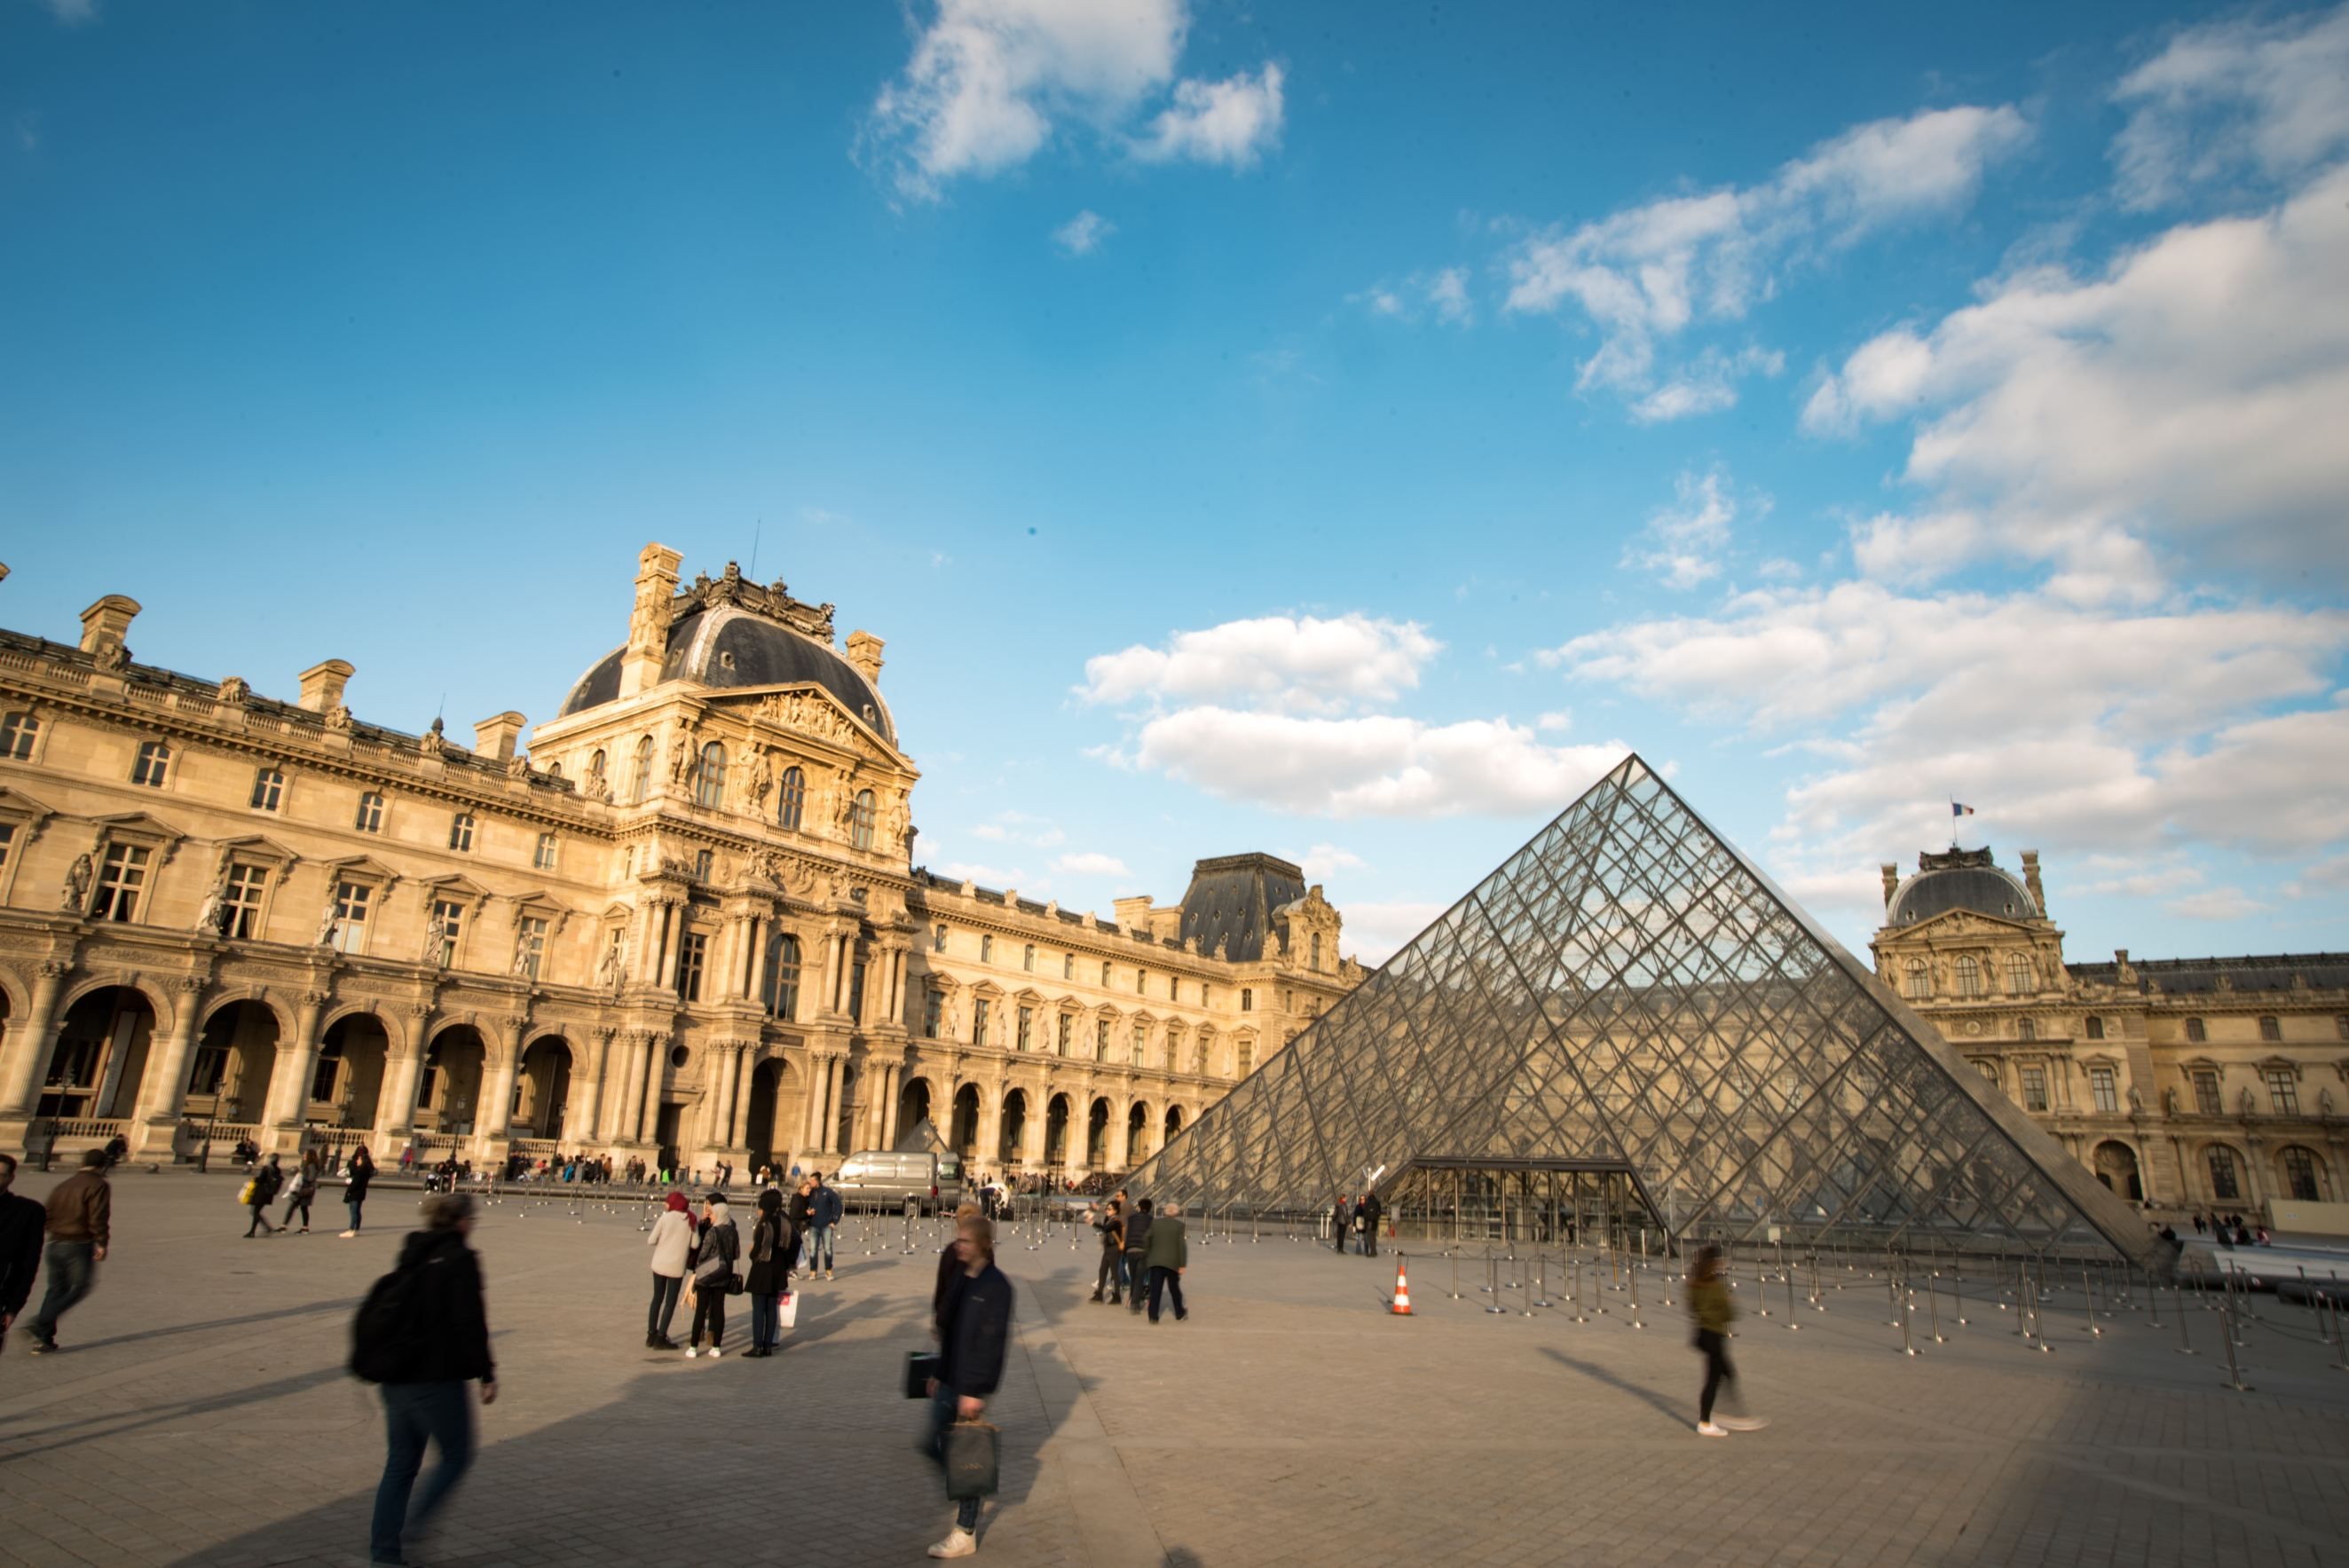 Paris Attractions by Arrondissement - Guide To Paris' Neighborhoods: Le Louvre